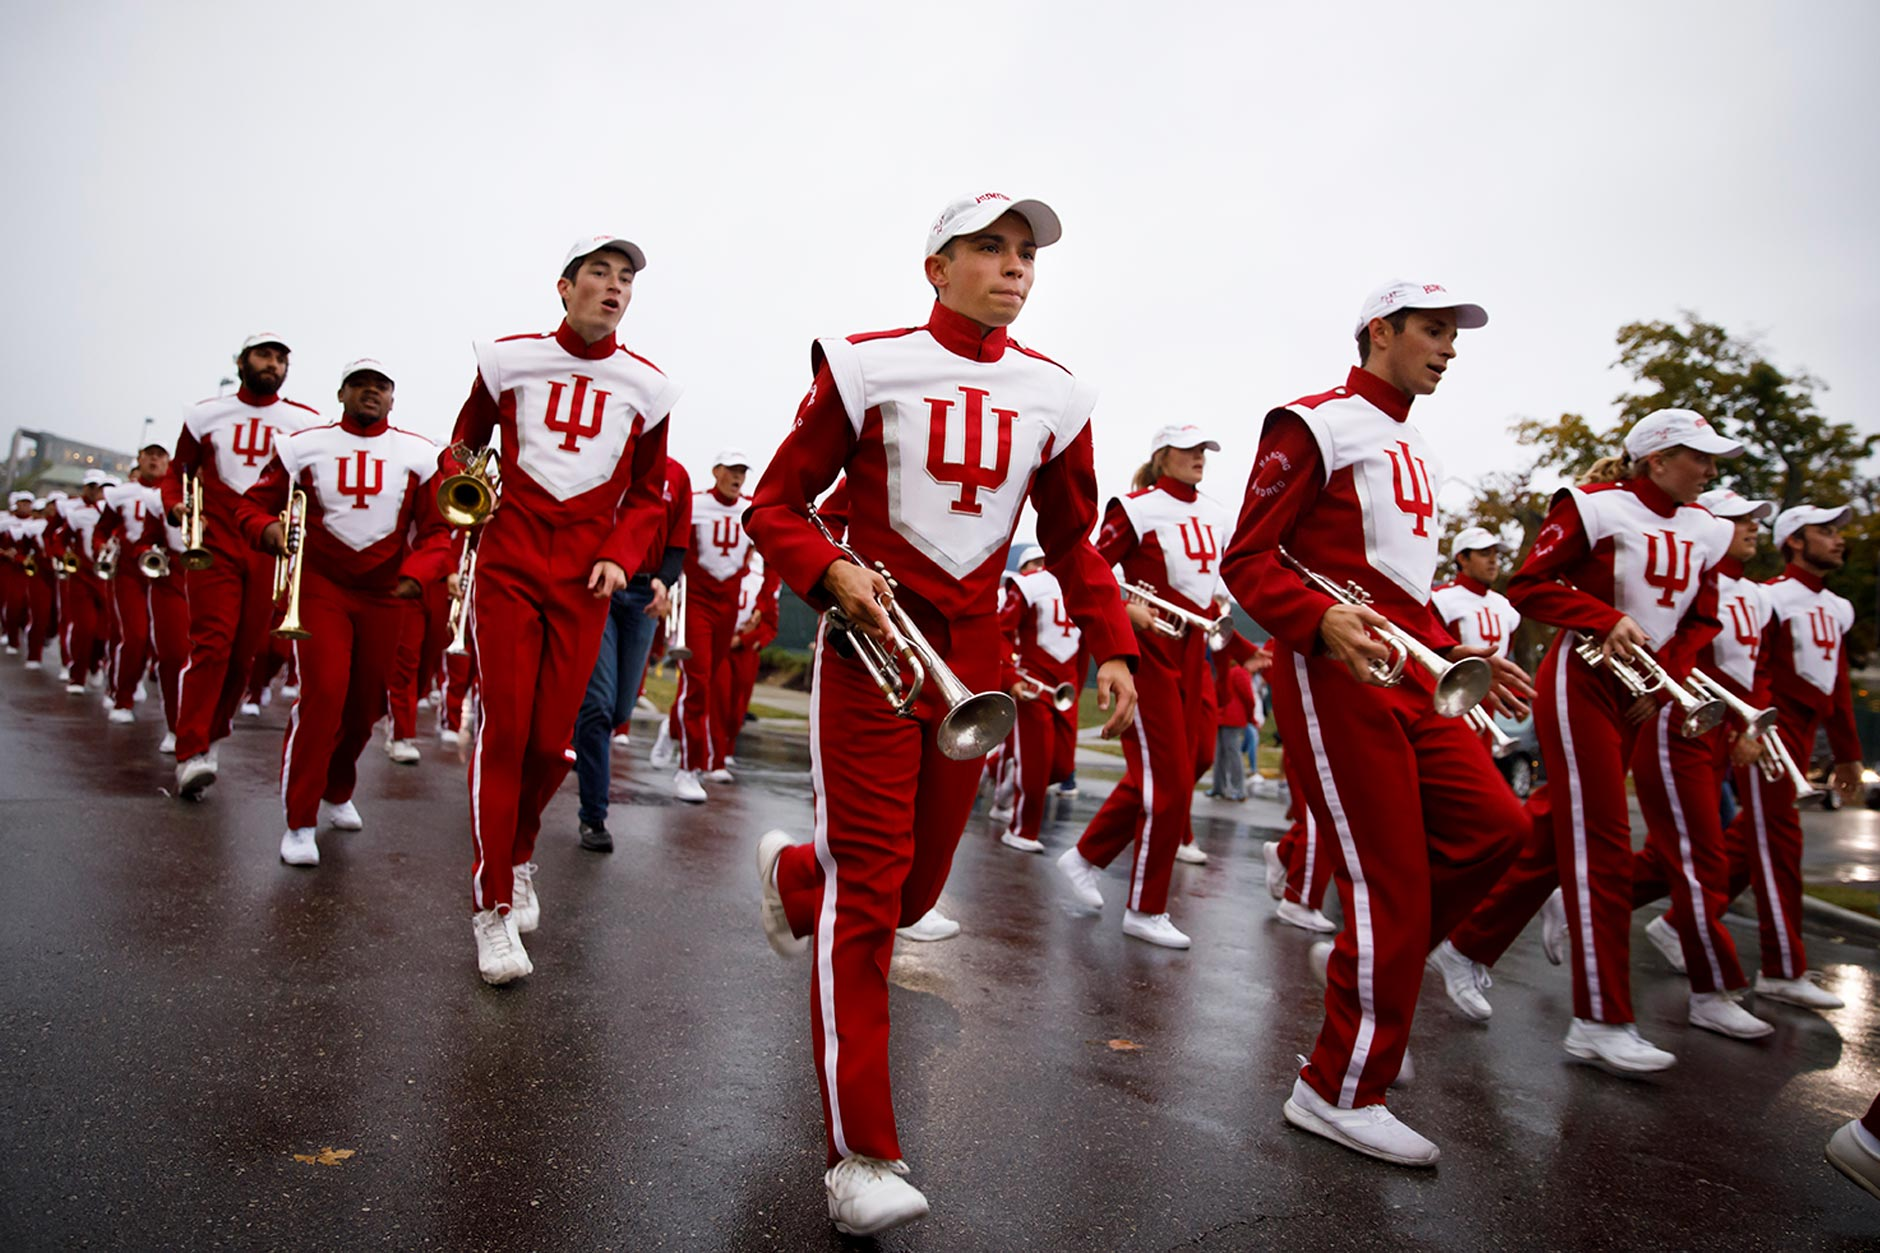 Members of the Indiana University Marching Hundred perform during the IU Bloomington Homecoming Parade on Friday, Oct. 11, 2019. (James Brosher/Indiana University)